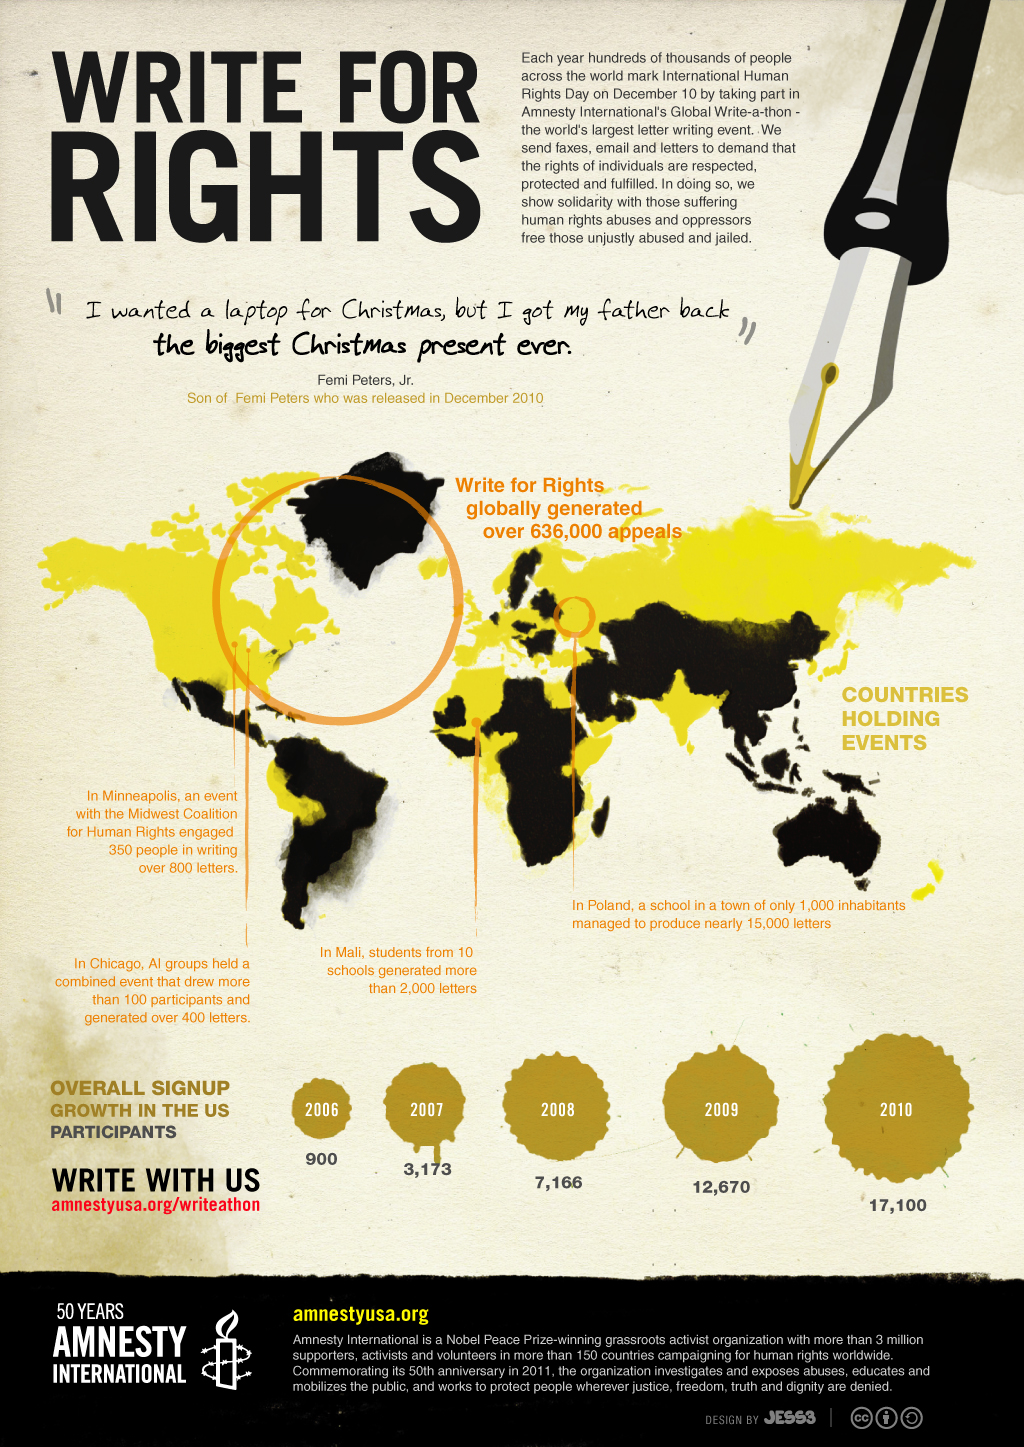 Write for Rights